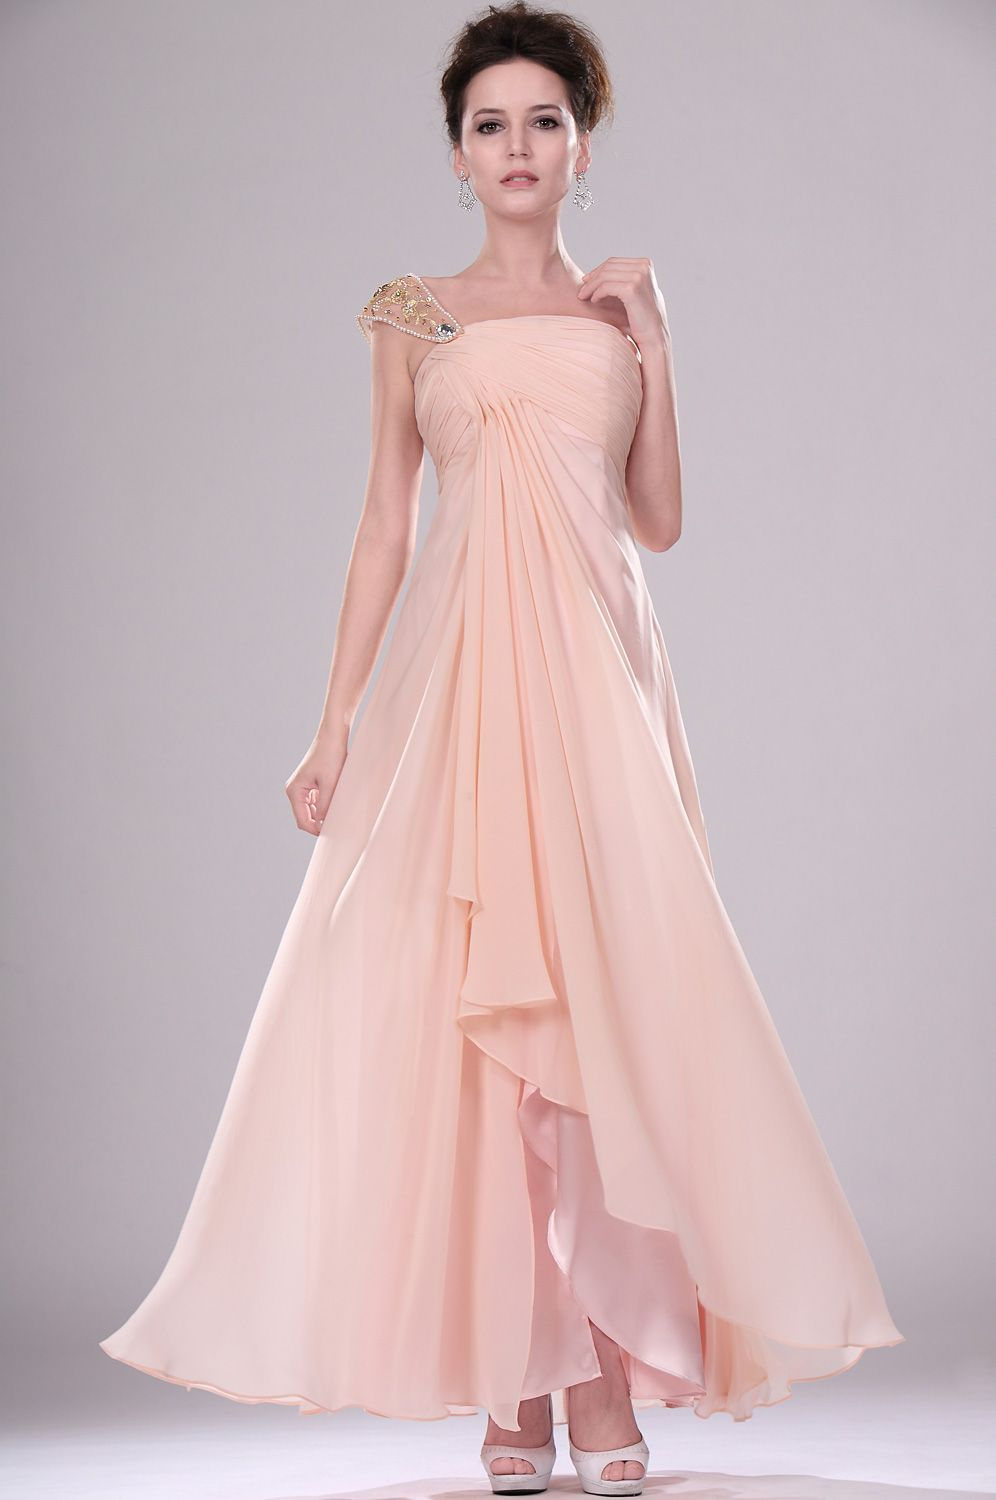 pretty repin by eDressit.com | eDressit | Prom Dress | Pinterest